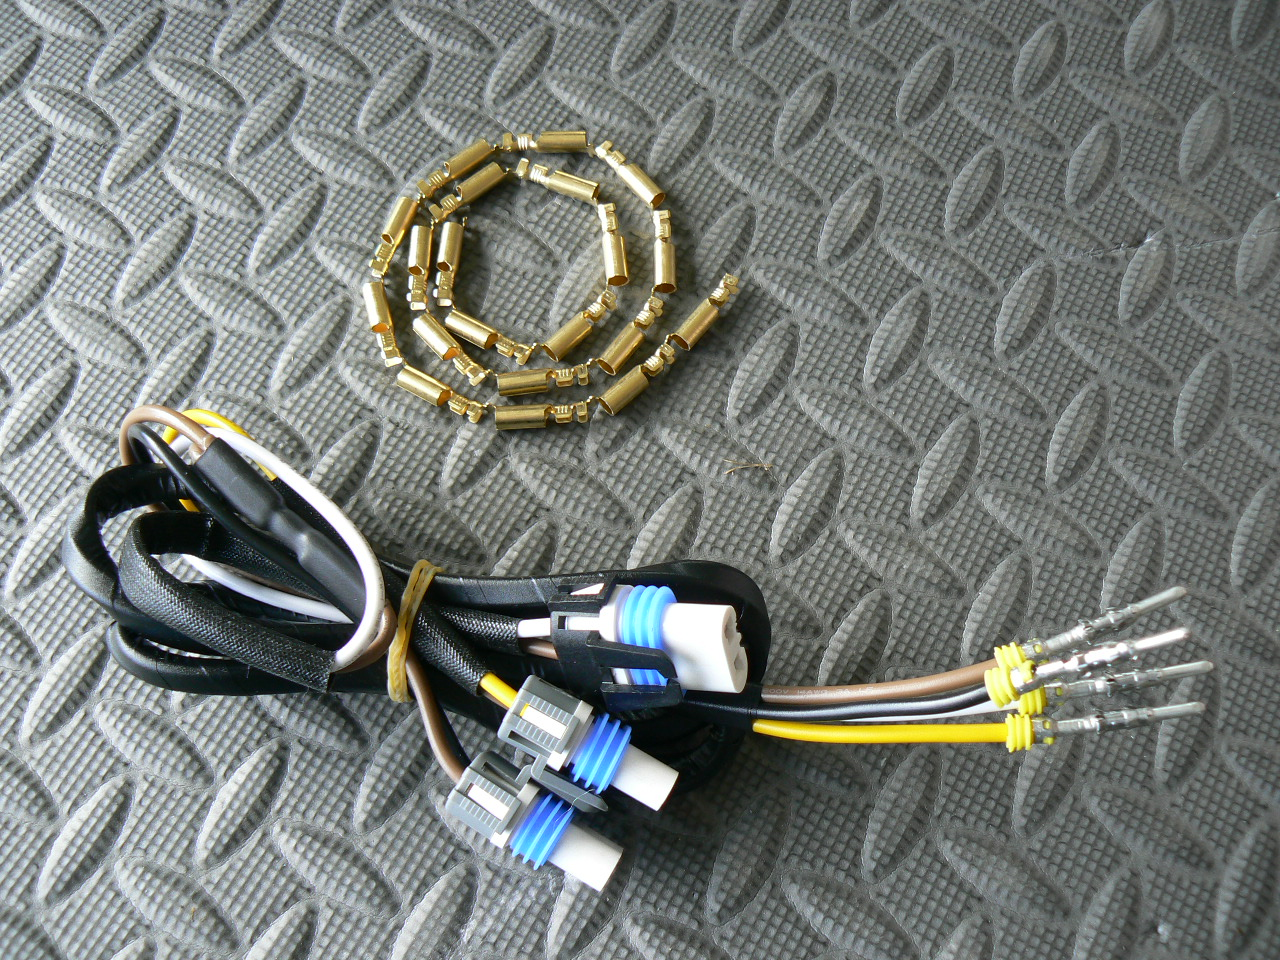 Headlight Wiring Repair Bmw 850i Engine Harness Contact Me By Regular Email At E31partsbmw8us For More Info